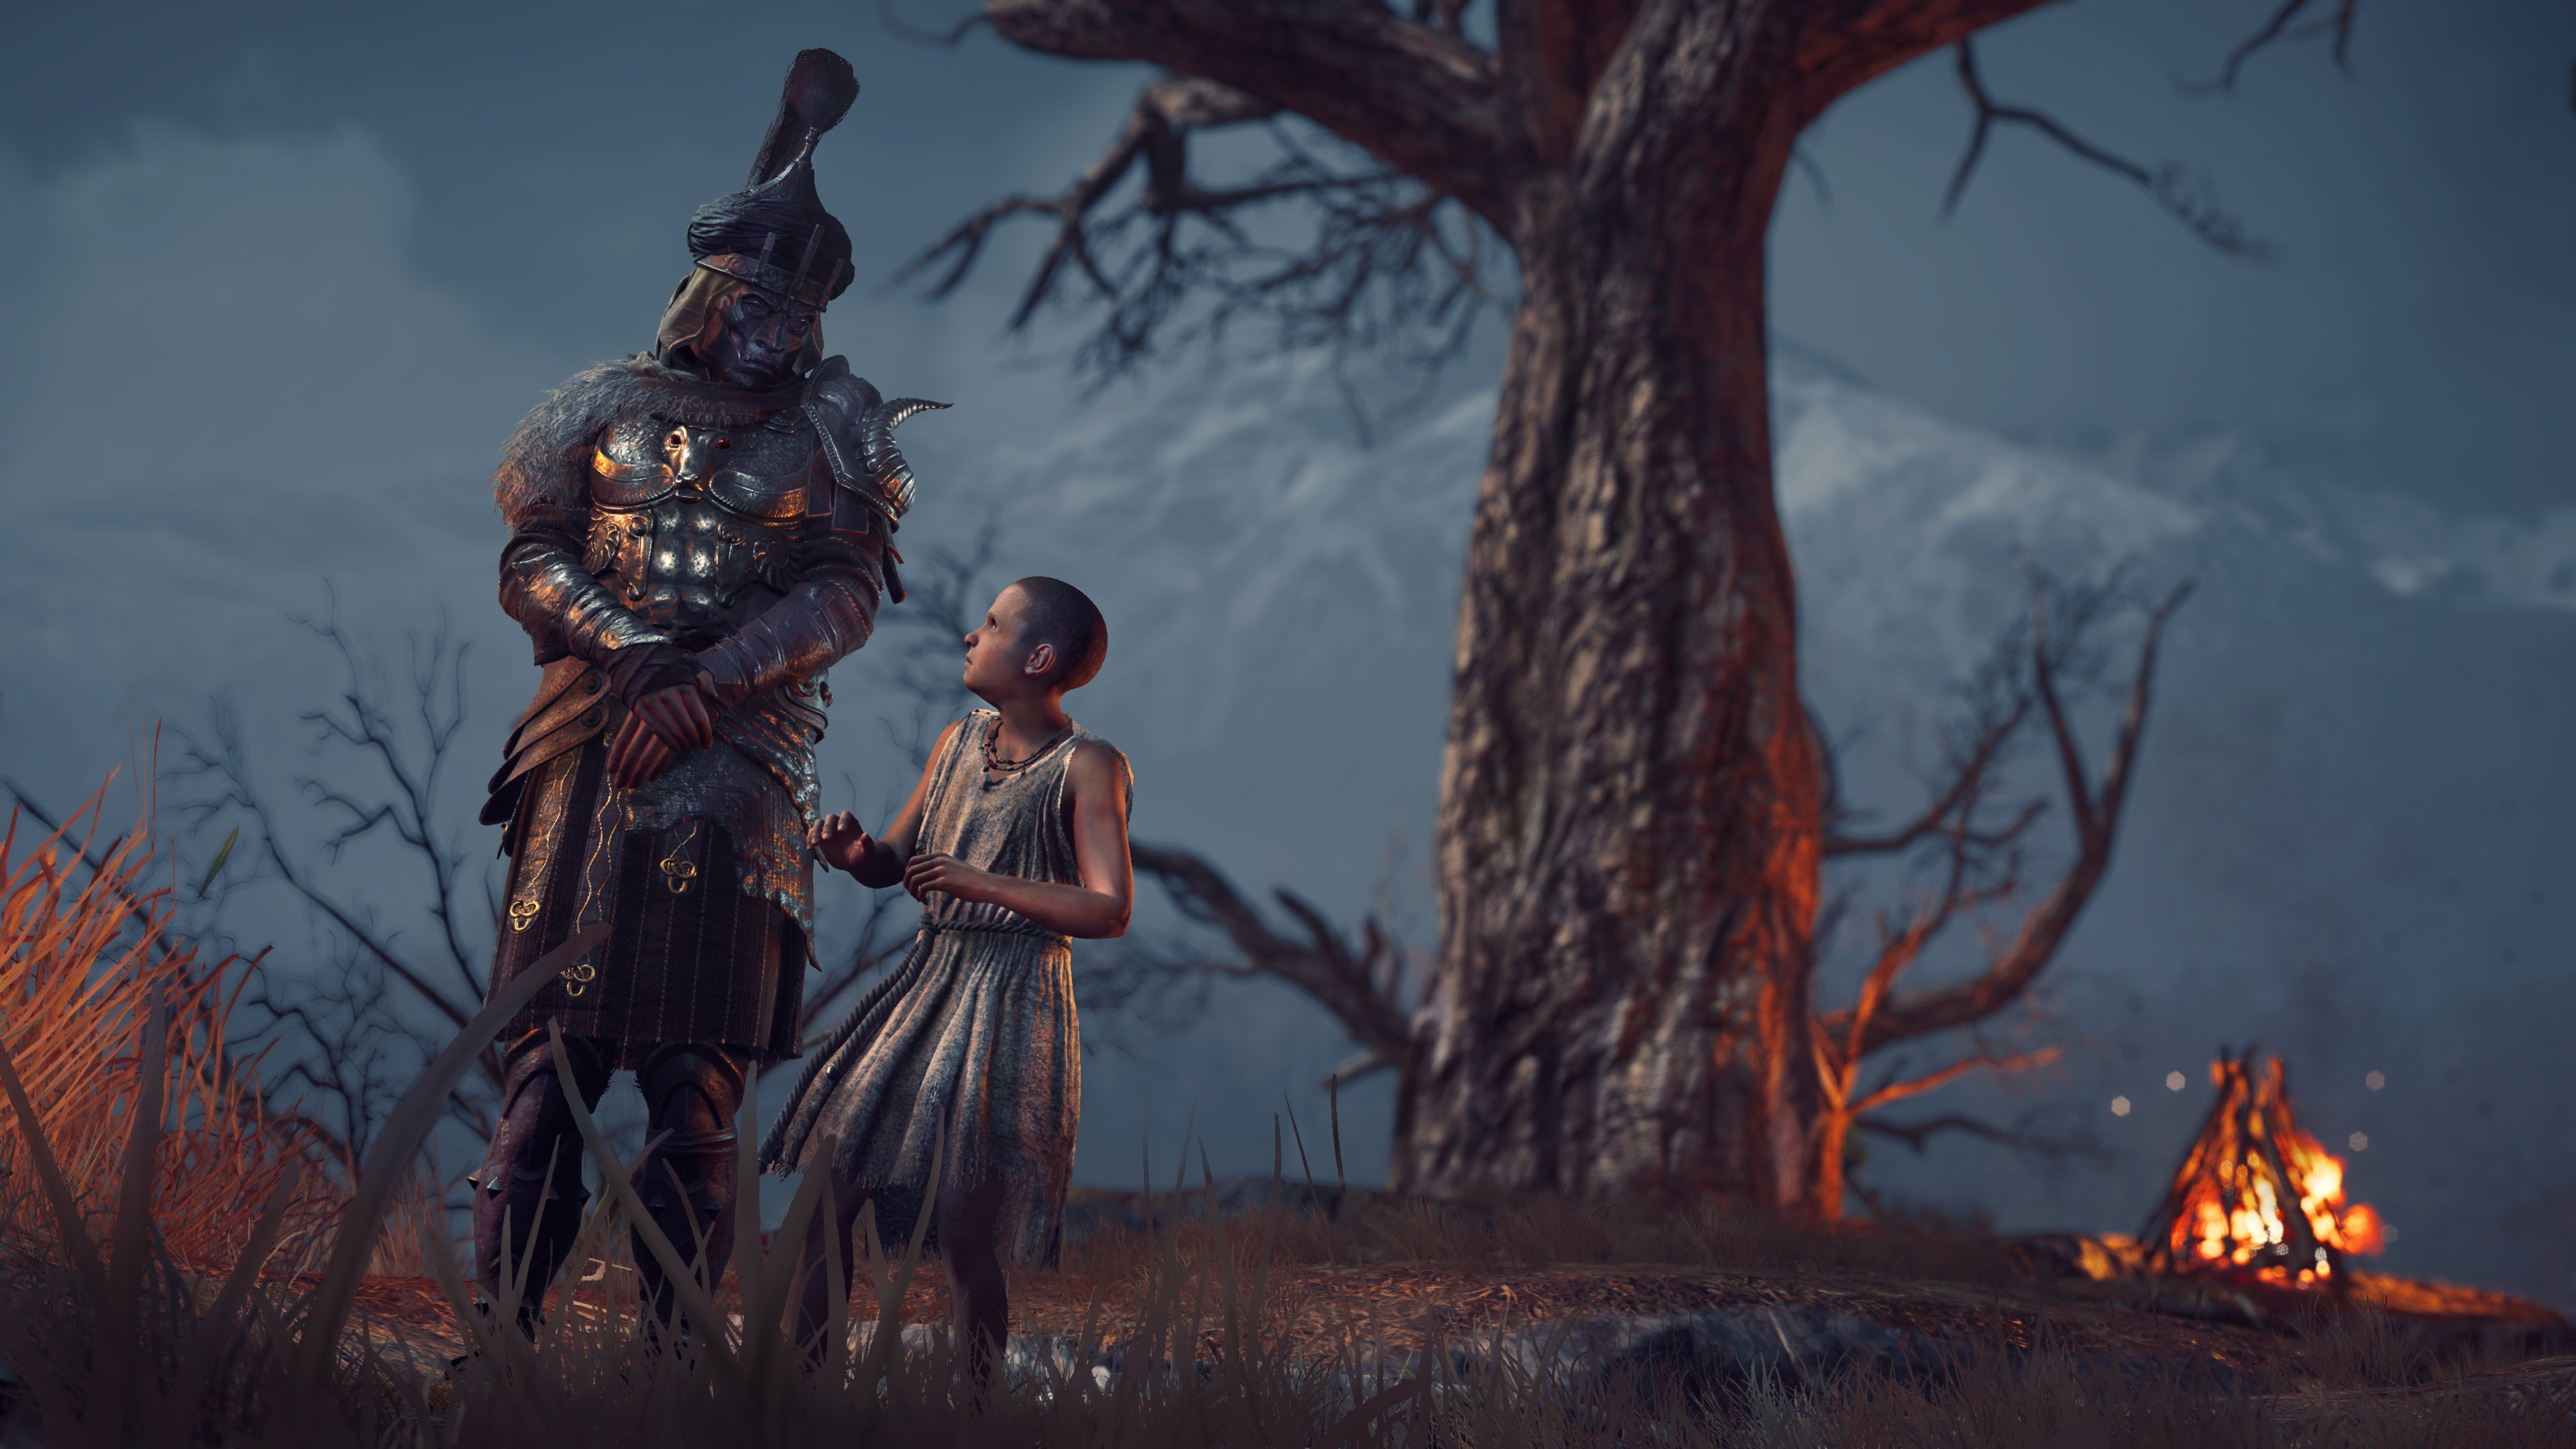 Assassin S Creed Odyssey S New Approach To Expansions May Indicate